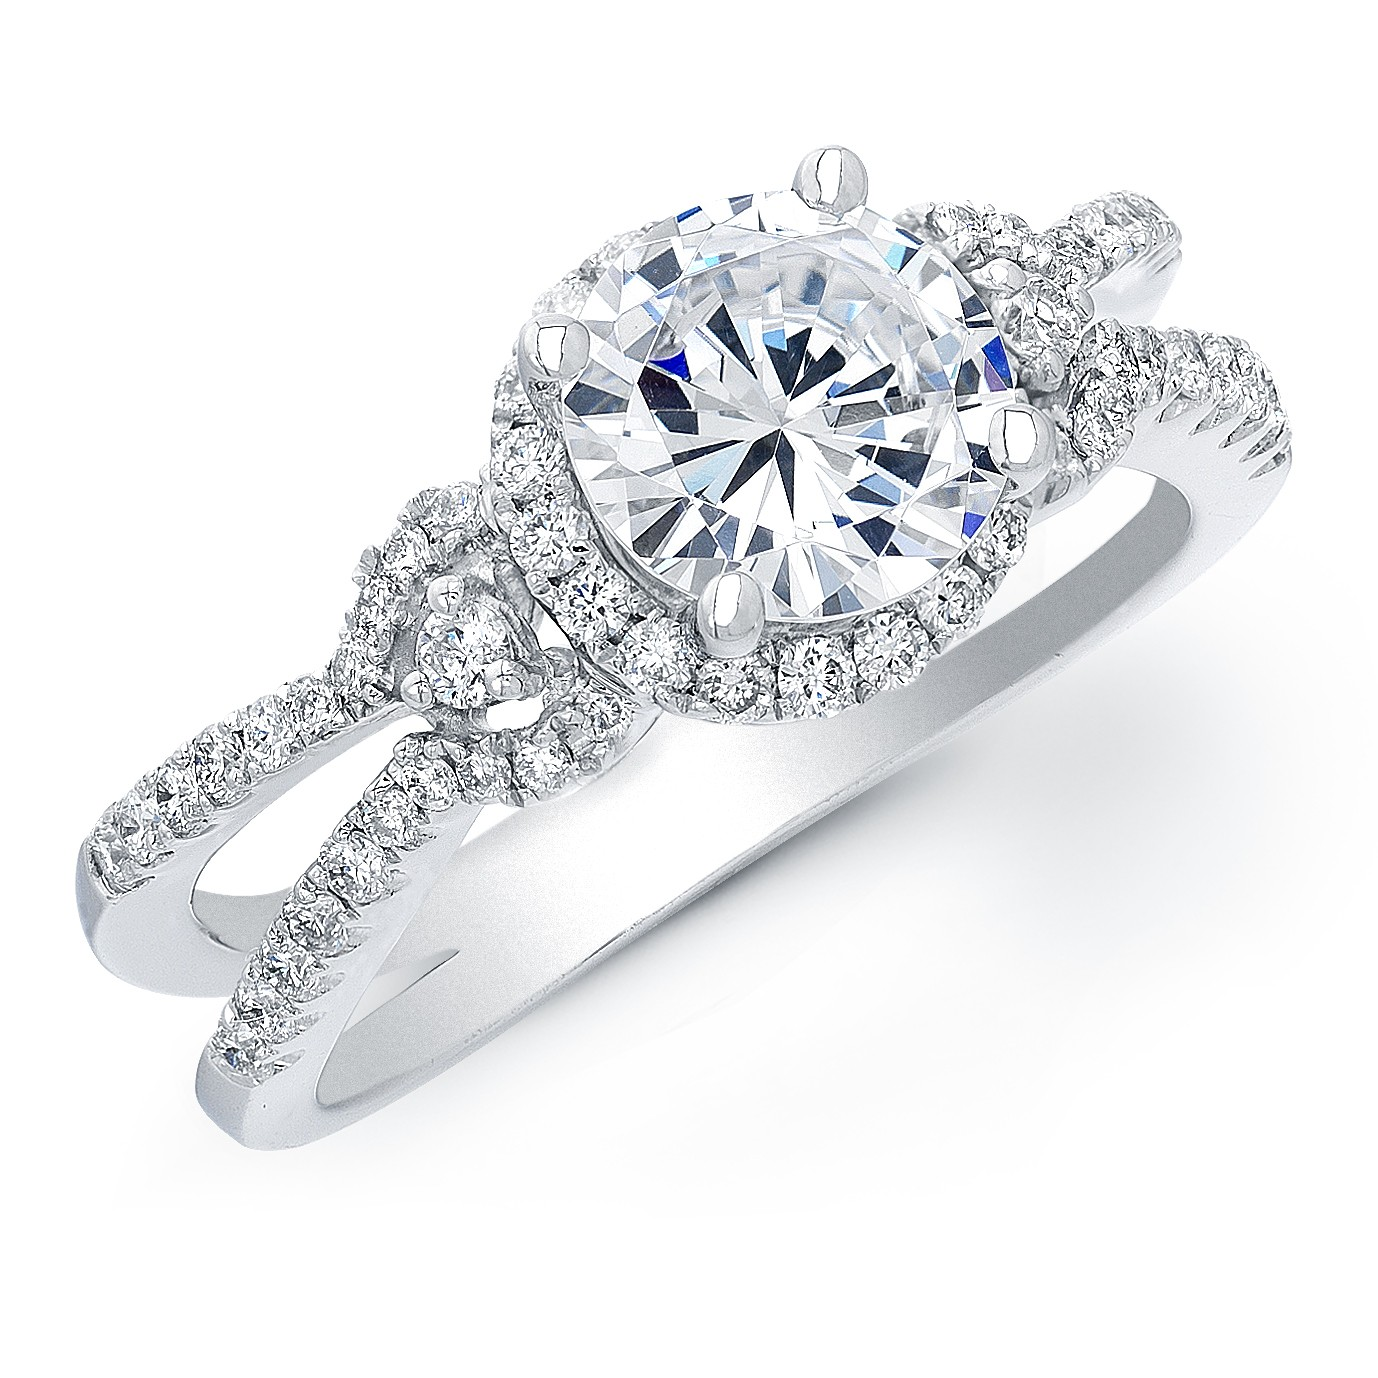 Ring Settings Engagement Ring Settings For Women